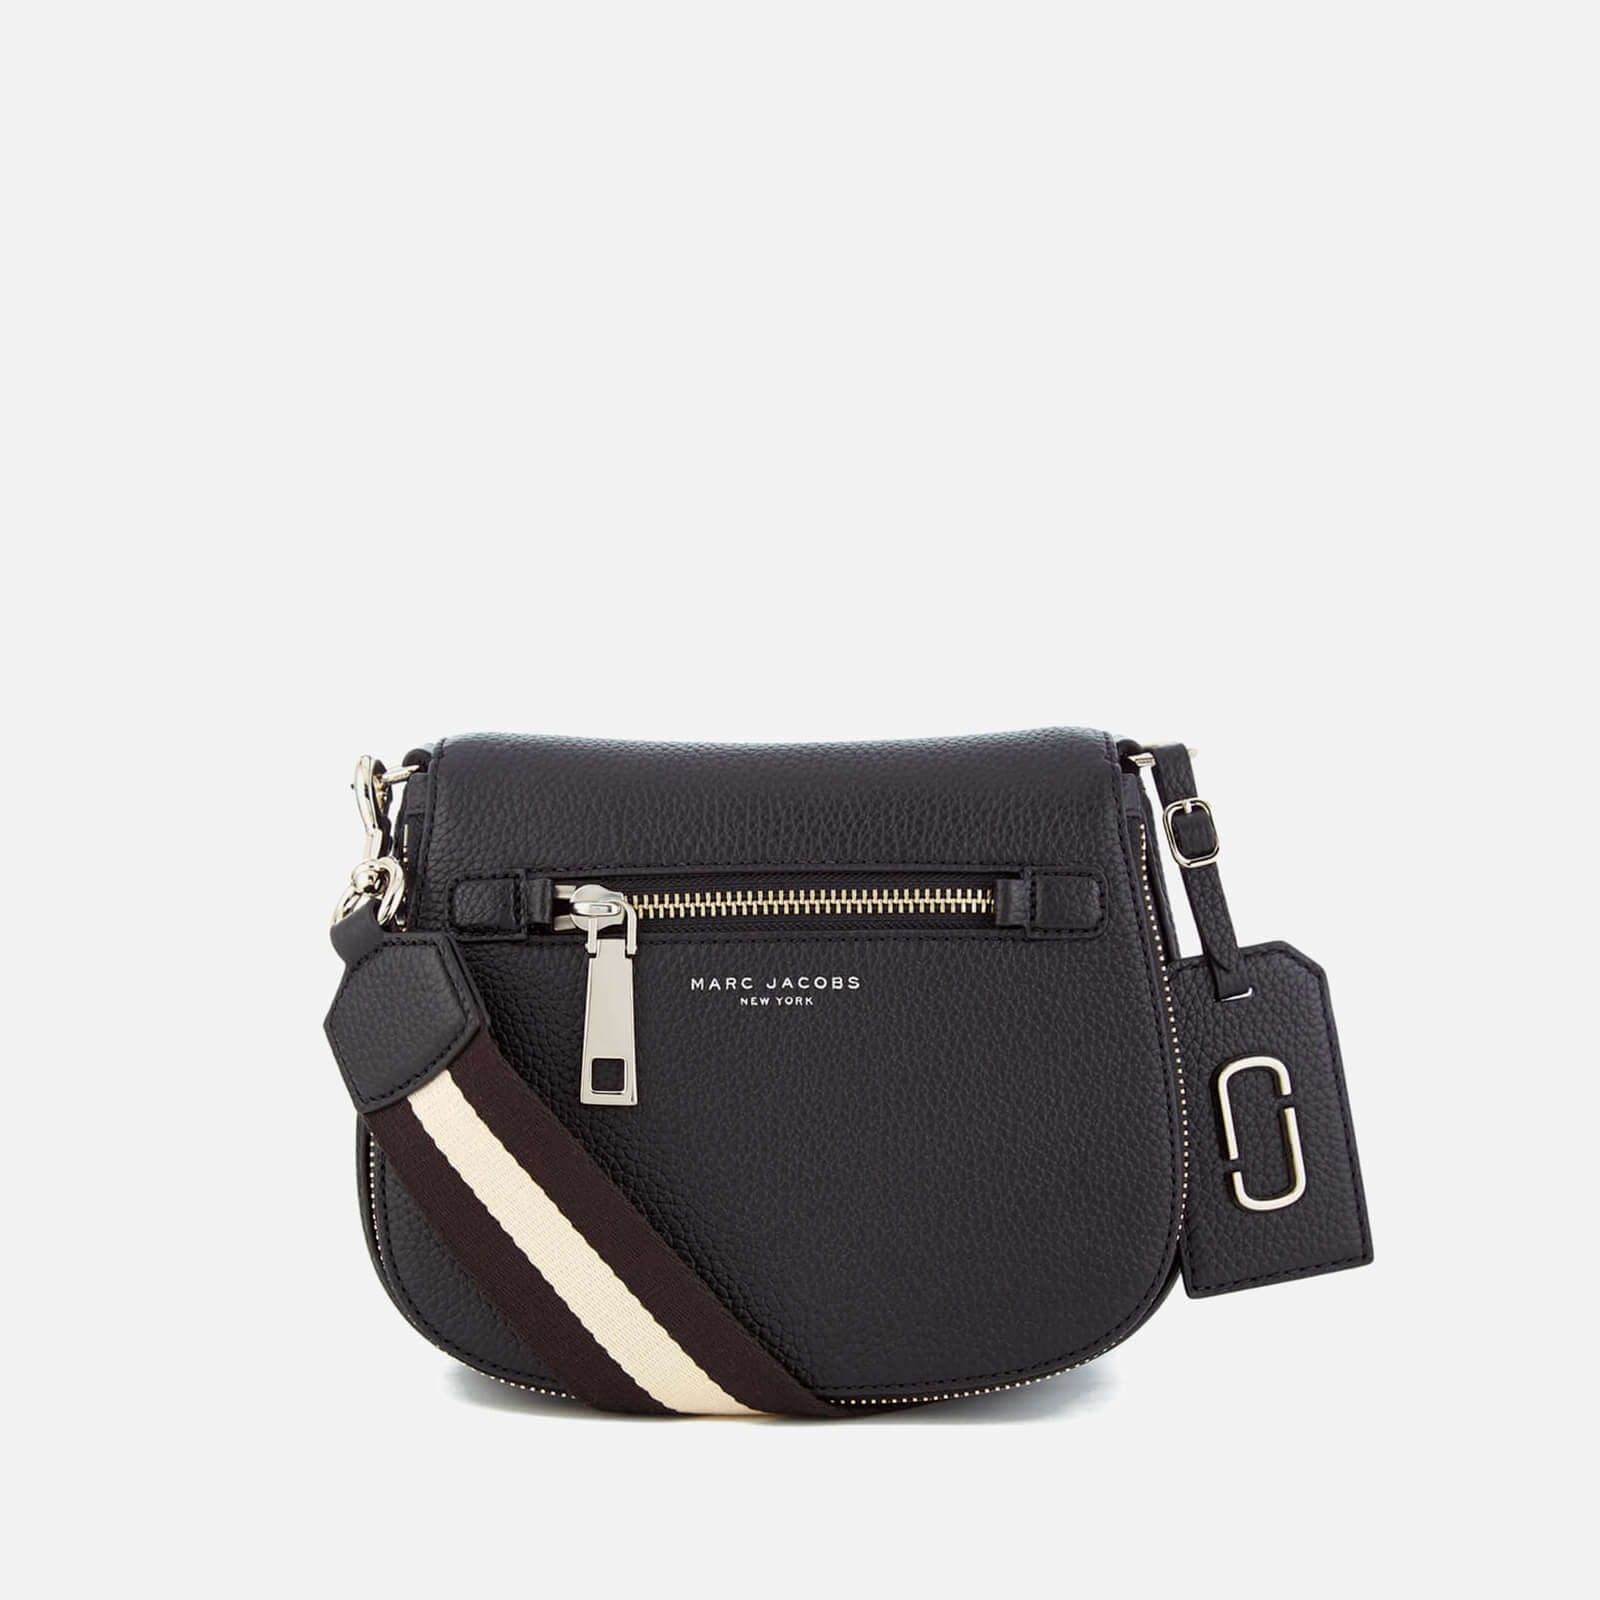 0844ab4f067f ... Marc Jacobs Women s Gotham Small Nomad Sport Strap Saddle Bag - Black